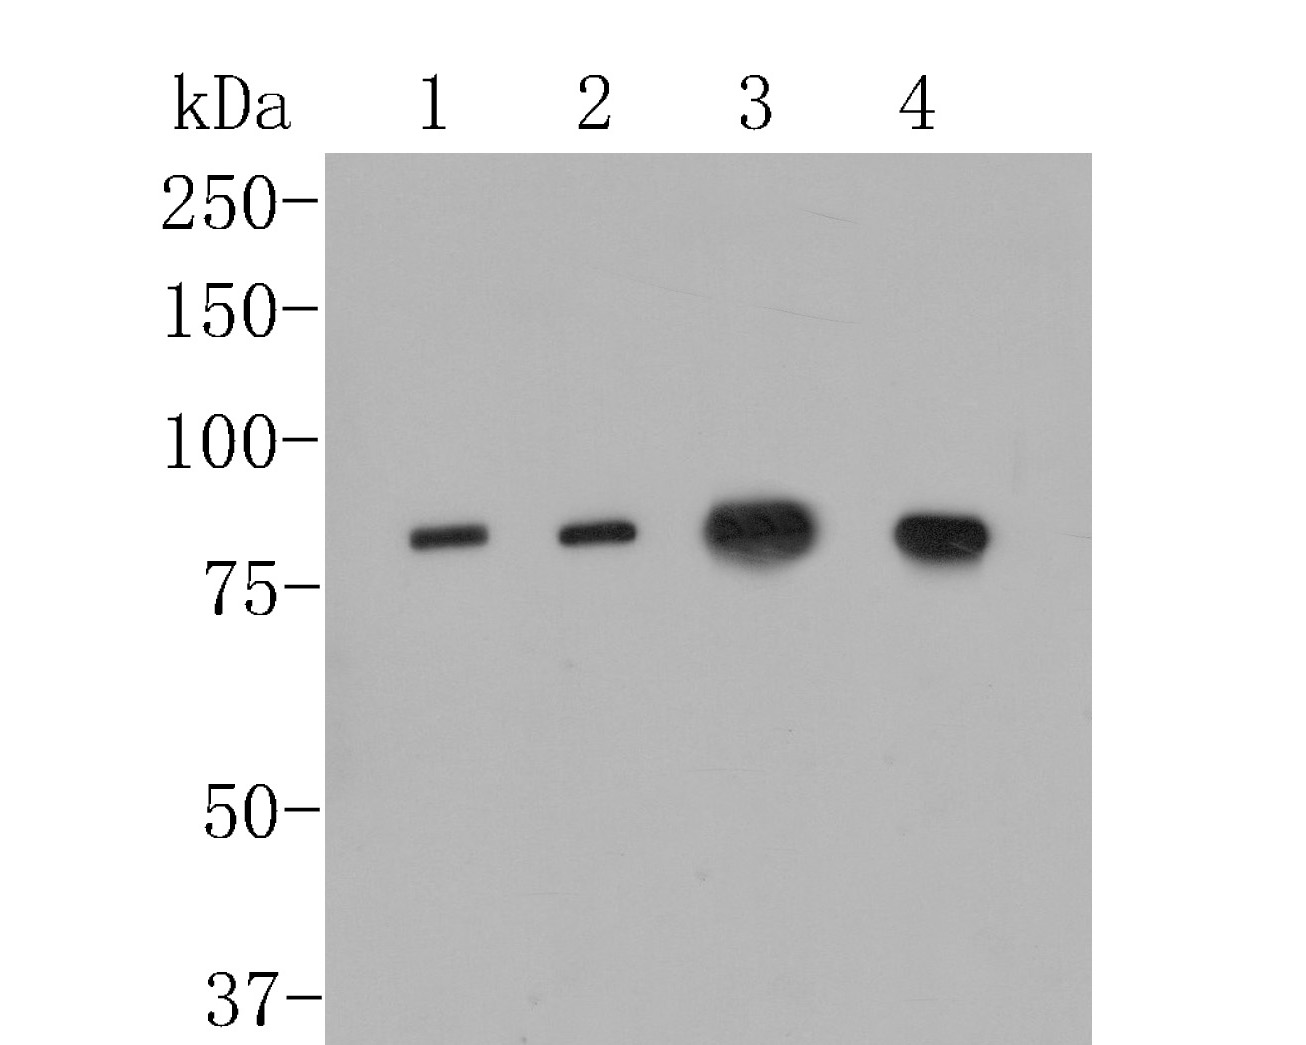 Western blot analysis of APOER2 on different lysates. Proteins were transferred to a PVDF membrane and blocked with 5% BSA in PBS for 1 hour at room temperature. The primary antibody (EM1902-30, 1/500) was used in 5% BSA at room temperature for 2 hours. Goat Anti-Mouse IgG - HRP Secondary Antibody (HA1006) at 1:5,000 dilution was used for 1 hour at room temperature.<br /> Positive control: <br /> Lane 1: A549 cell lysate<br /> Lane 2: SHSY5Y cell lysate<br /> Lane 3: SKBR-3 cell lysate<br /> Lane 4: U937 cell lysate